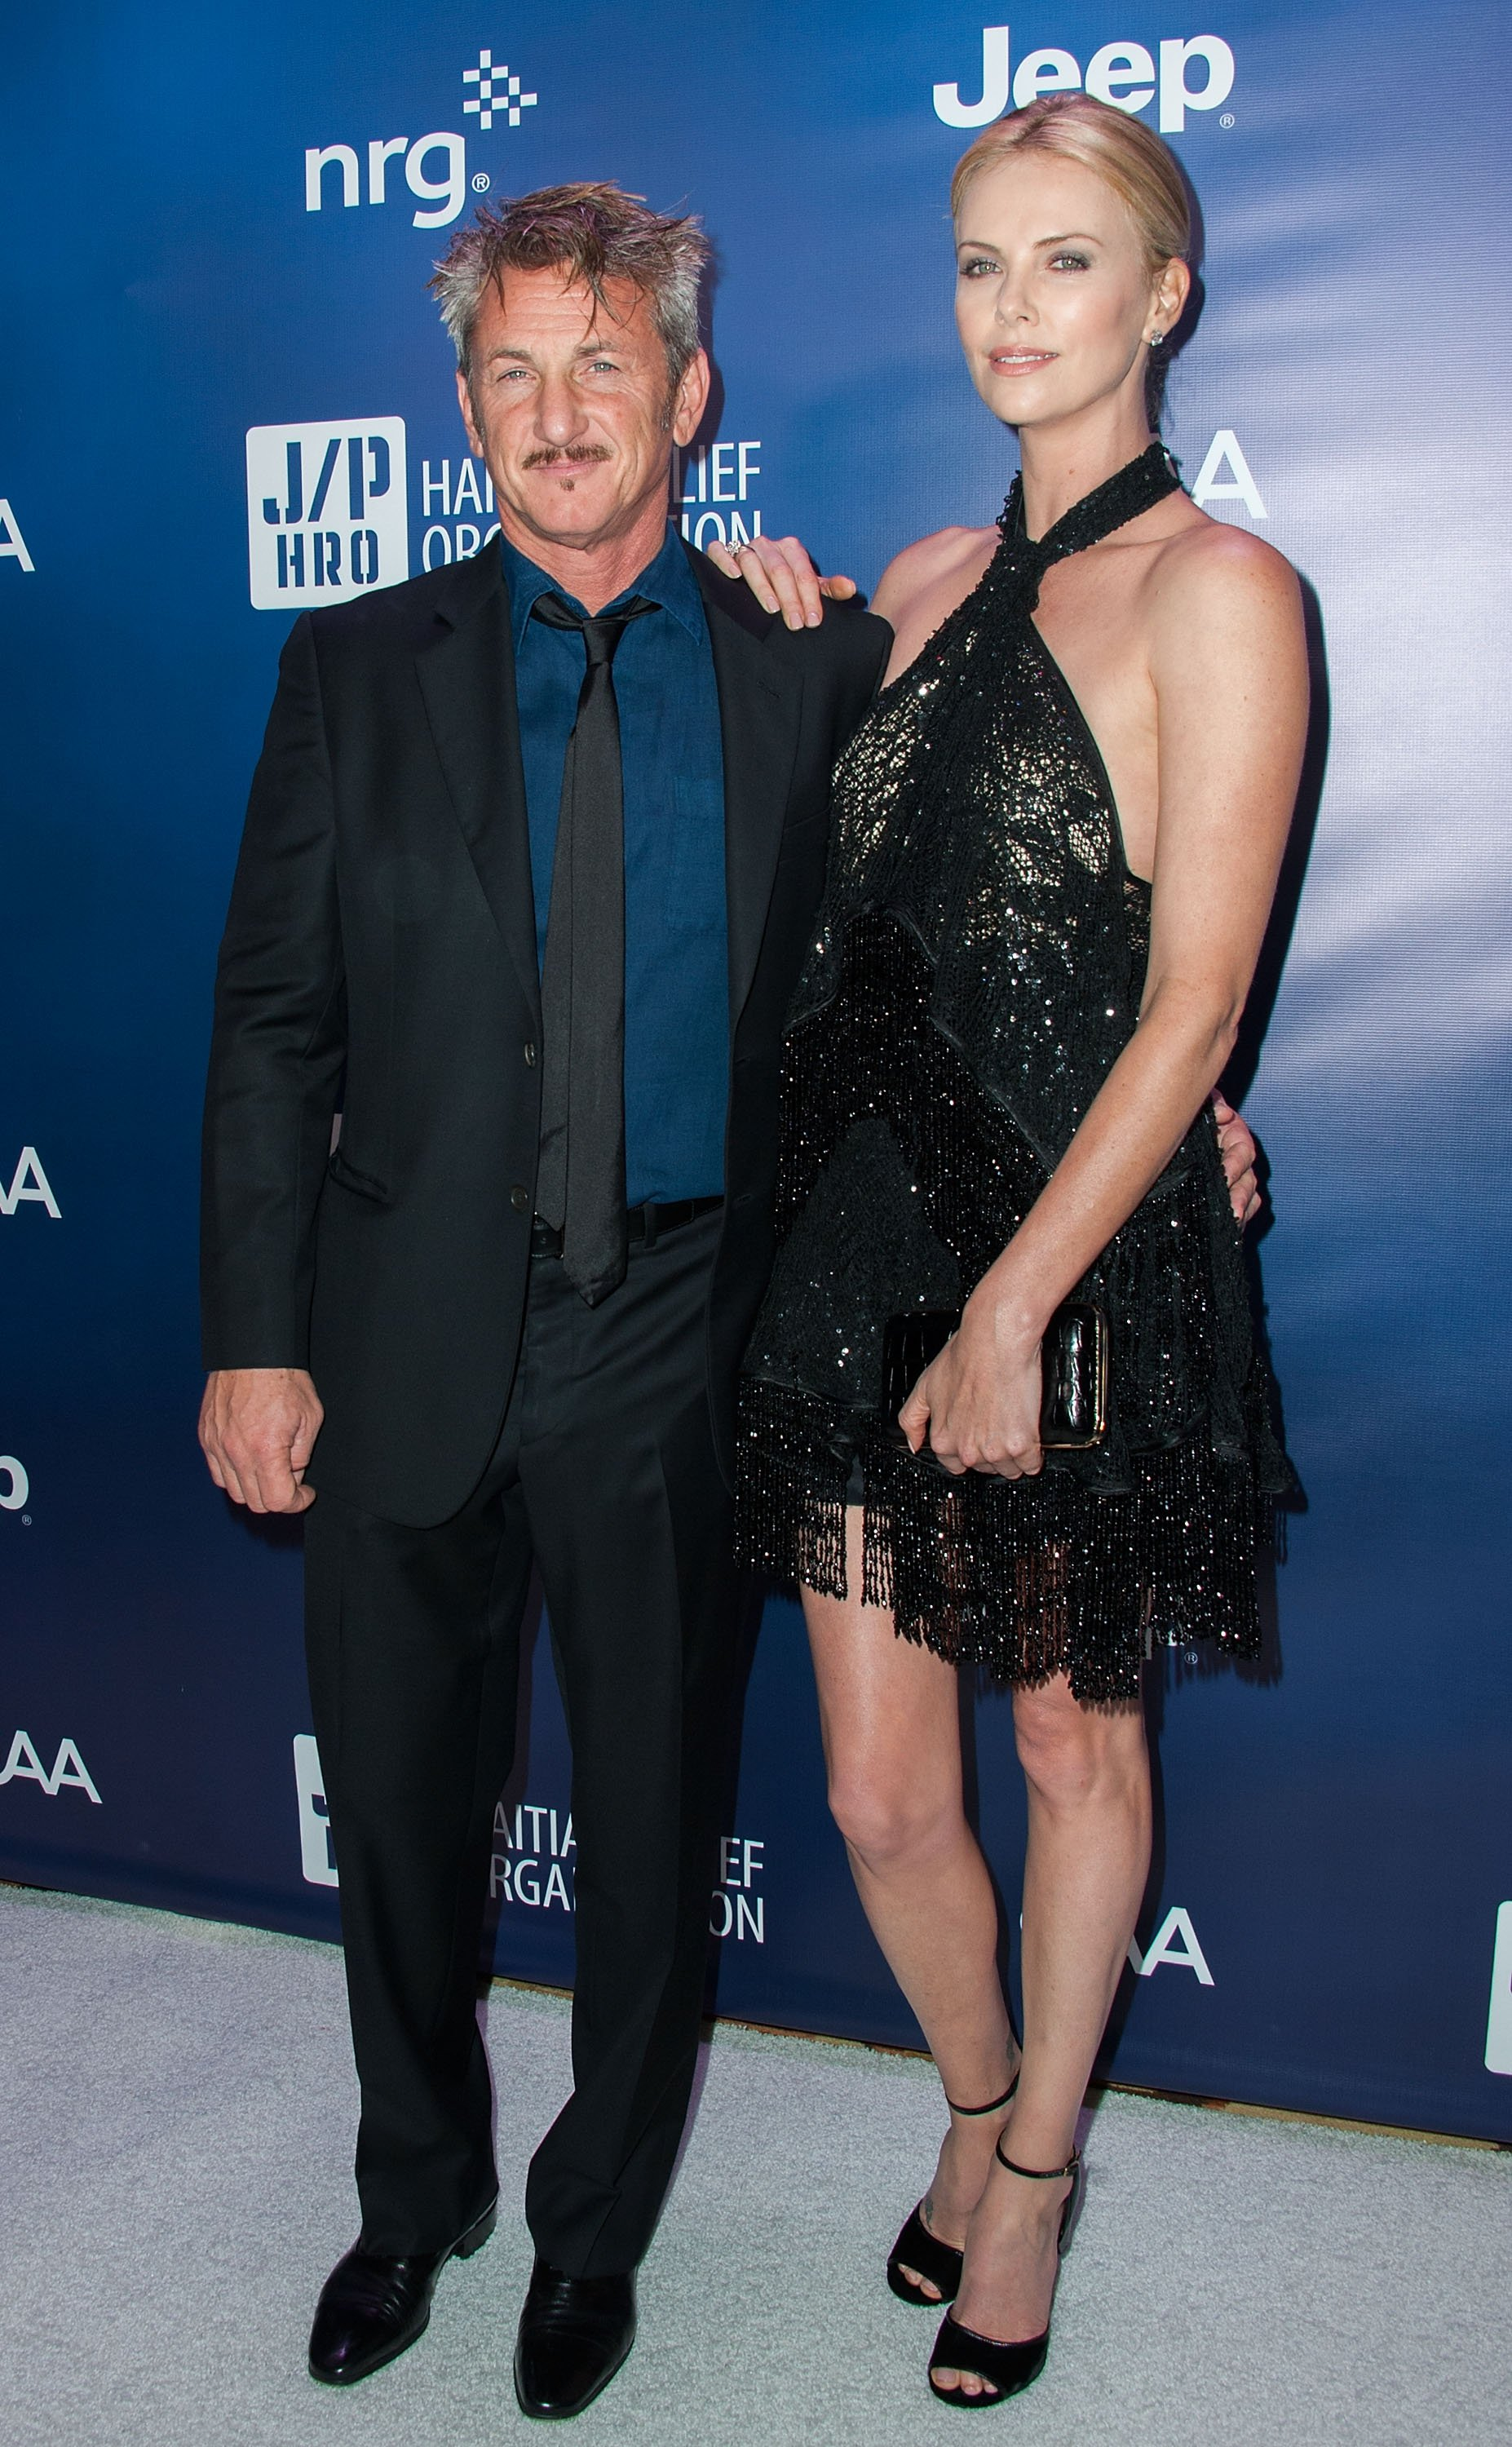 Actors Sean Penn and Charlize Theron arrive at the 4th Annual Sean Penn & Friends HELP HAITI HOME Gala Benefiting J/P Haitian Relief Organization at Montage Hotel on Jan. 10, 2015 in Los Angeles.